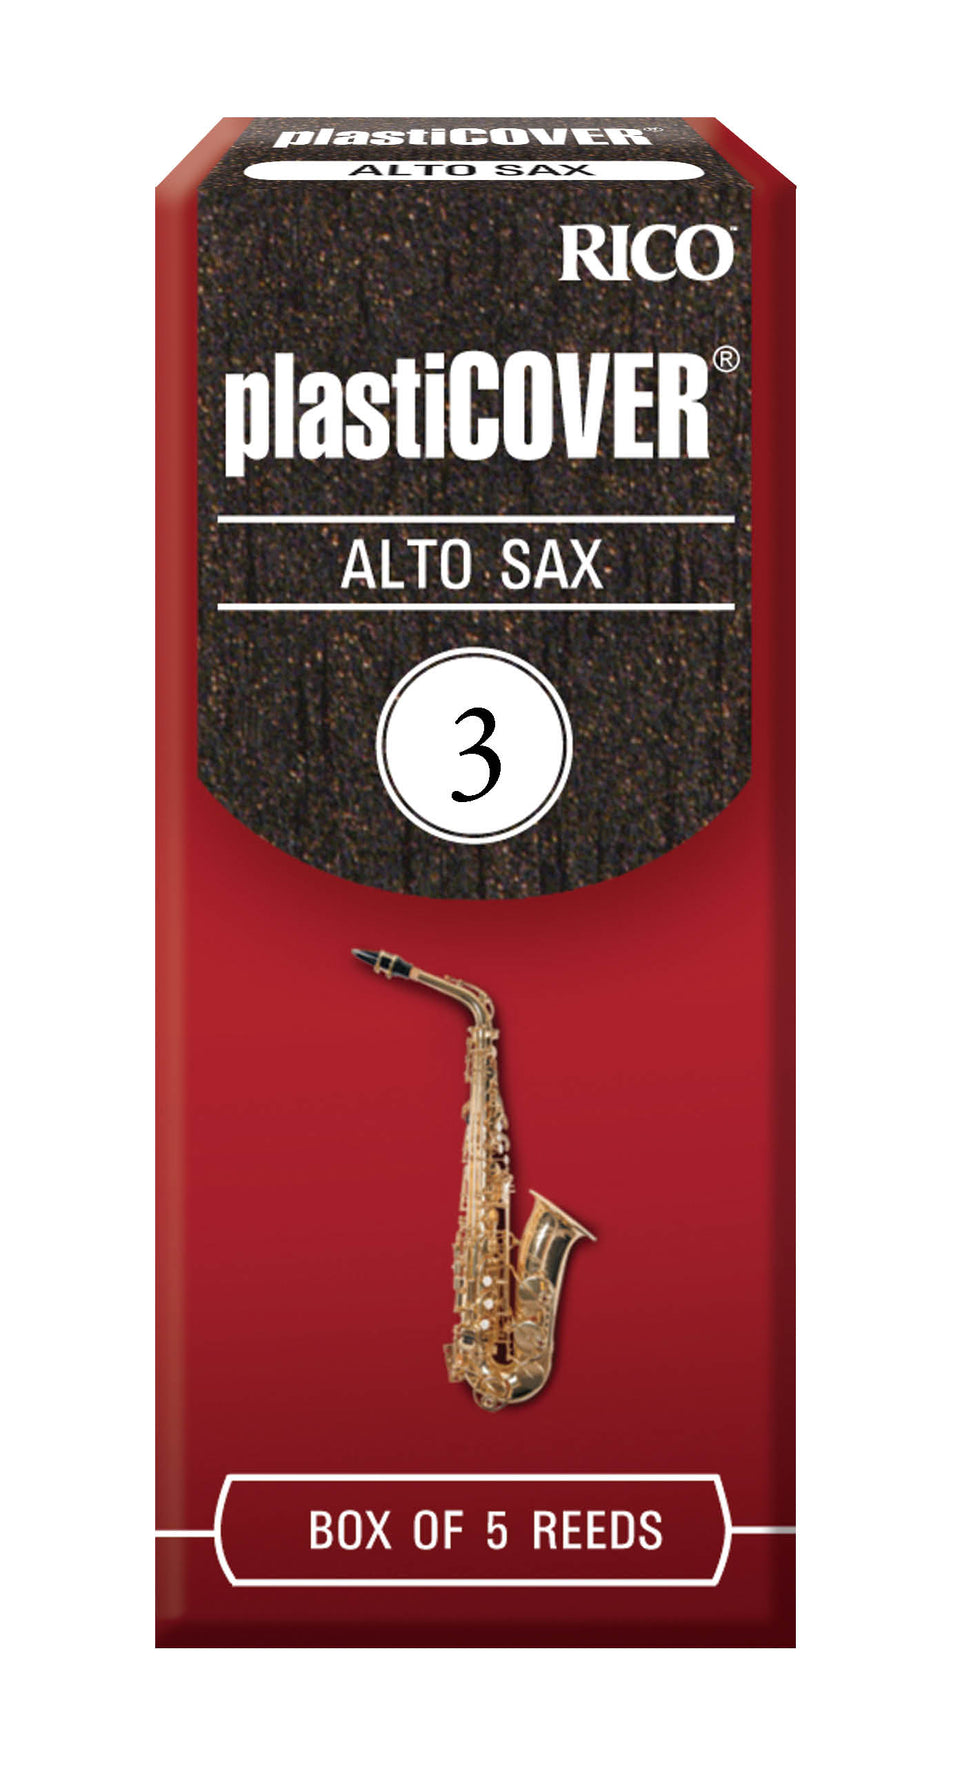 Ddaddario Woodwinds RRP05ASX300 Rico Plasticover Alto Sax Reeds, Strength 3.0, 5-pack